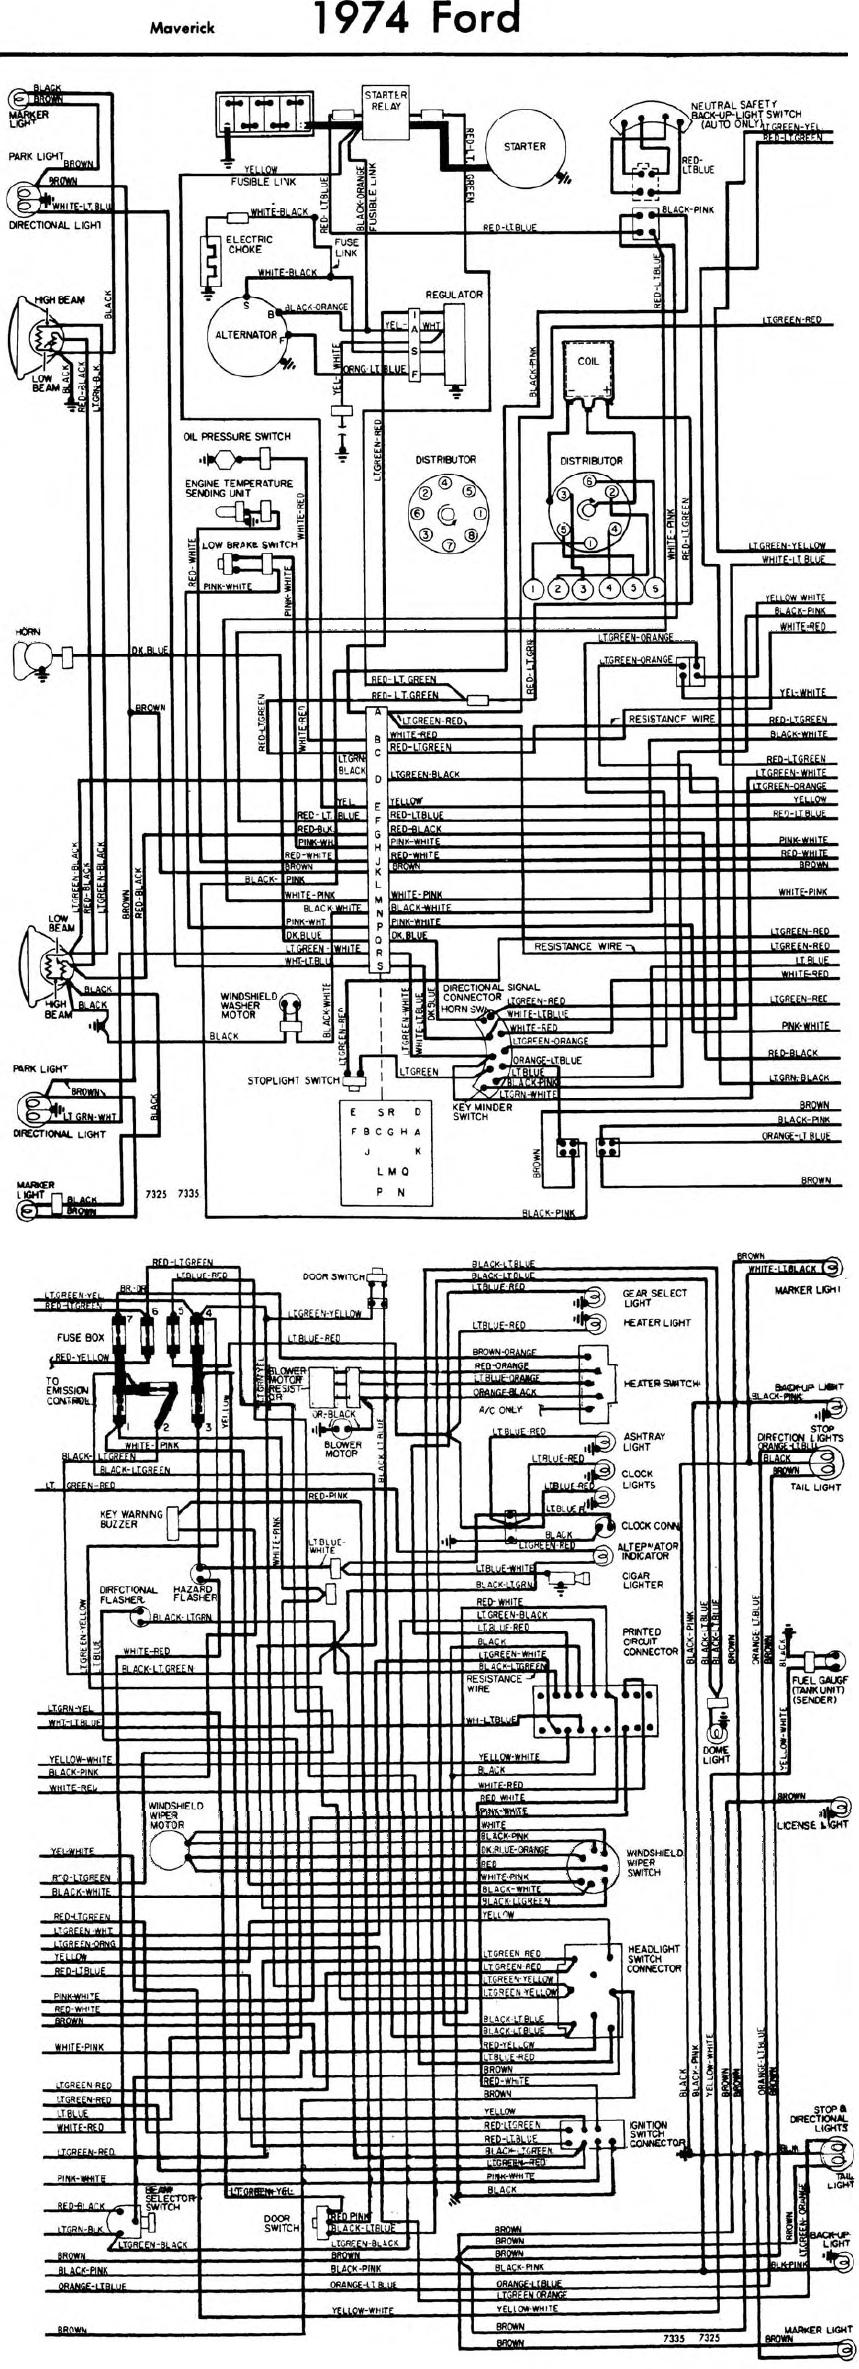 1970 ford maverick wiring diagram wiring schematic data 95 ford starter solenoid wiring diagram 1970 ford [ 859 x 2369 Pixel ]